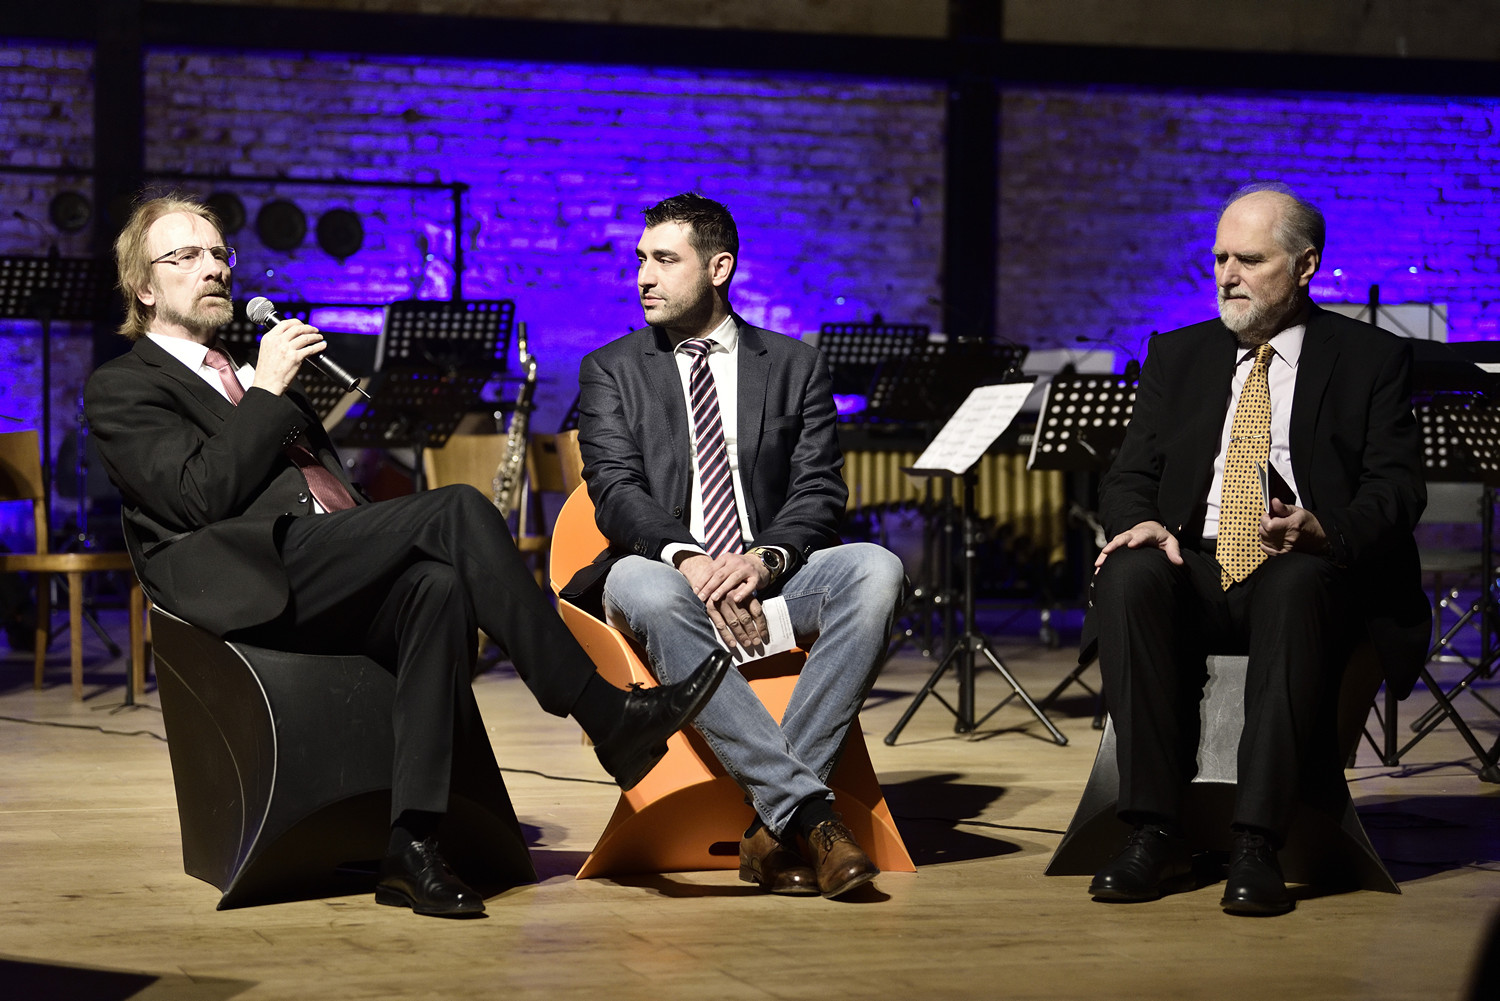 composers Marcel Wengler and Davorin Kempf and artist talk moderator, composer Ante Knešaurek